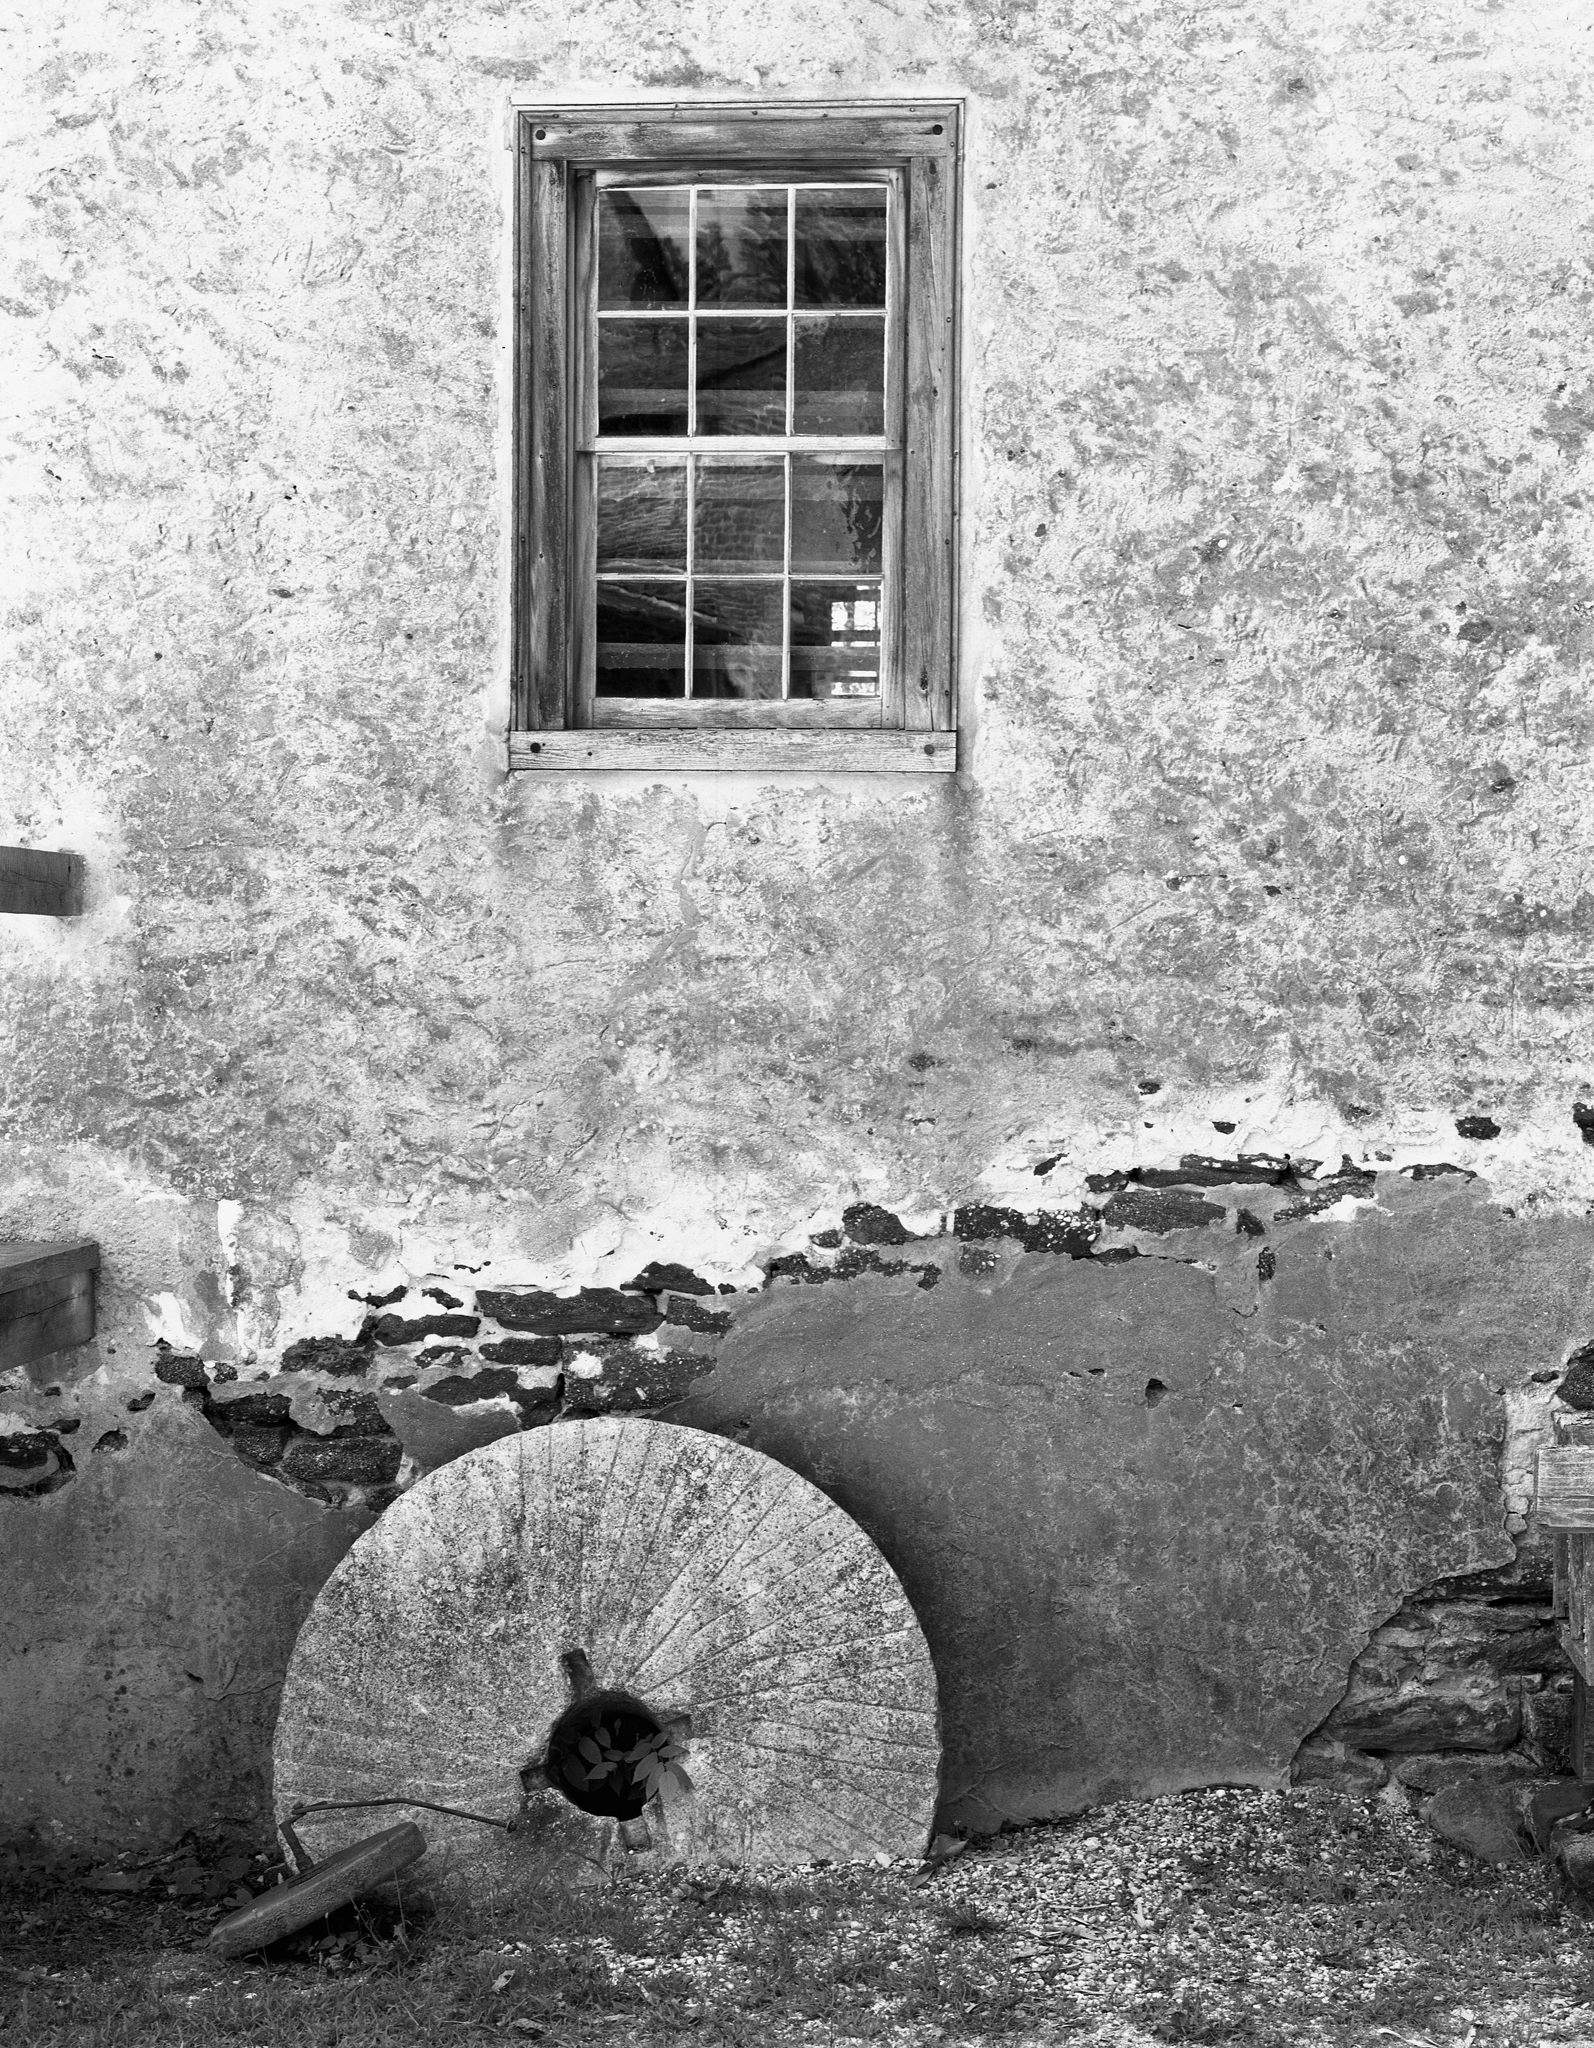 4x5_for_365_project_0193_Batsto_millstone.png